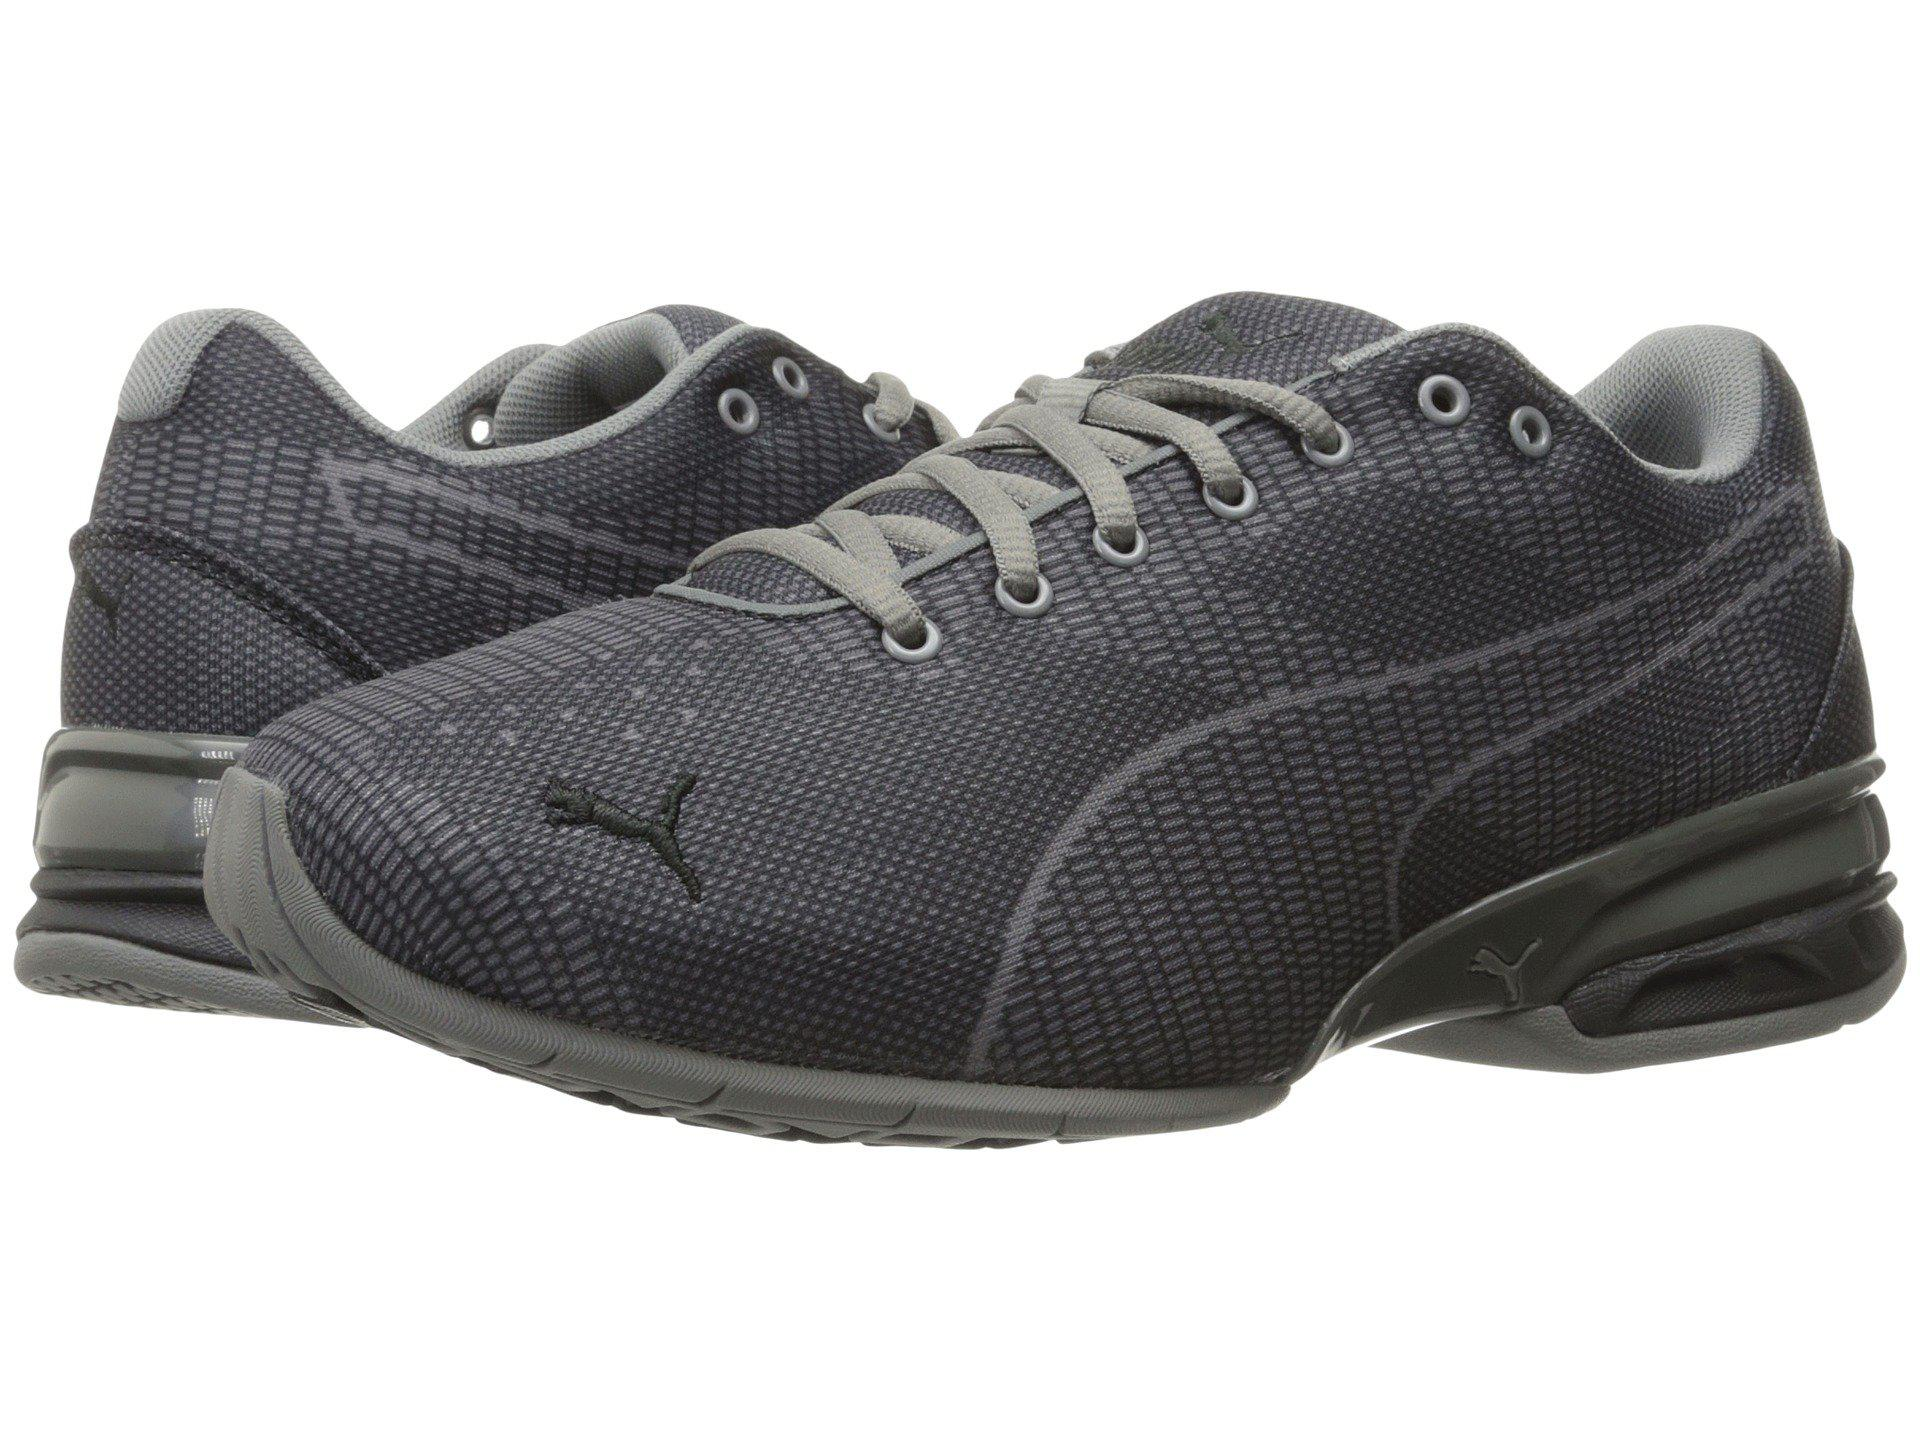 4abf0bbdf041 Lyst - PUMA Tazon 6 Wov Wide in Black for Men